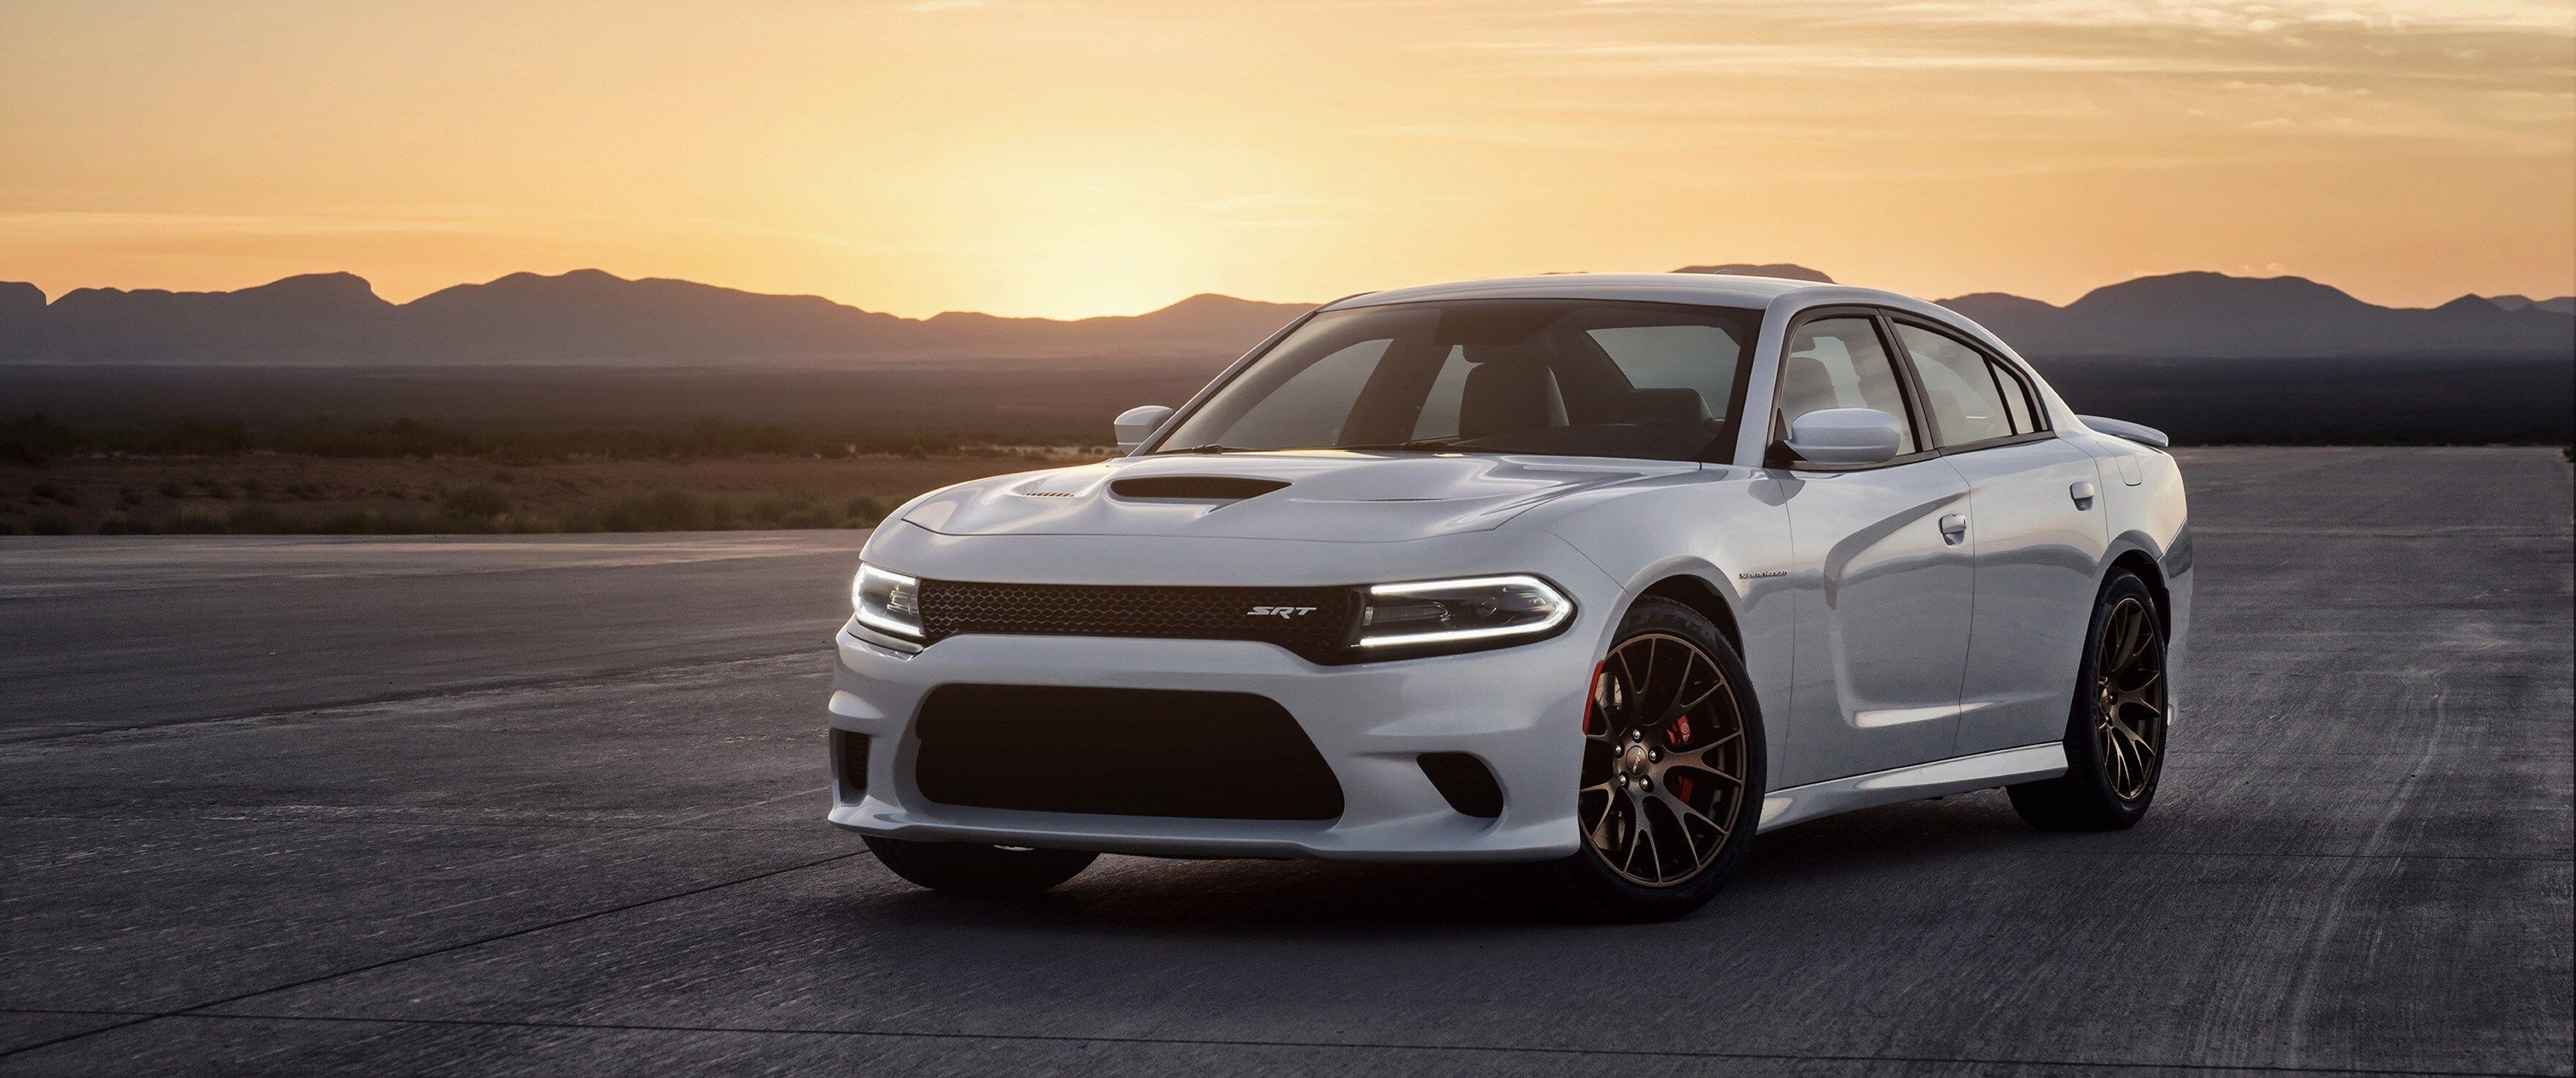 Res: 3440x1440, dodge charger hellcat Wallpapers HD